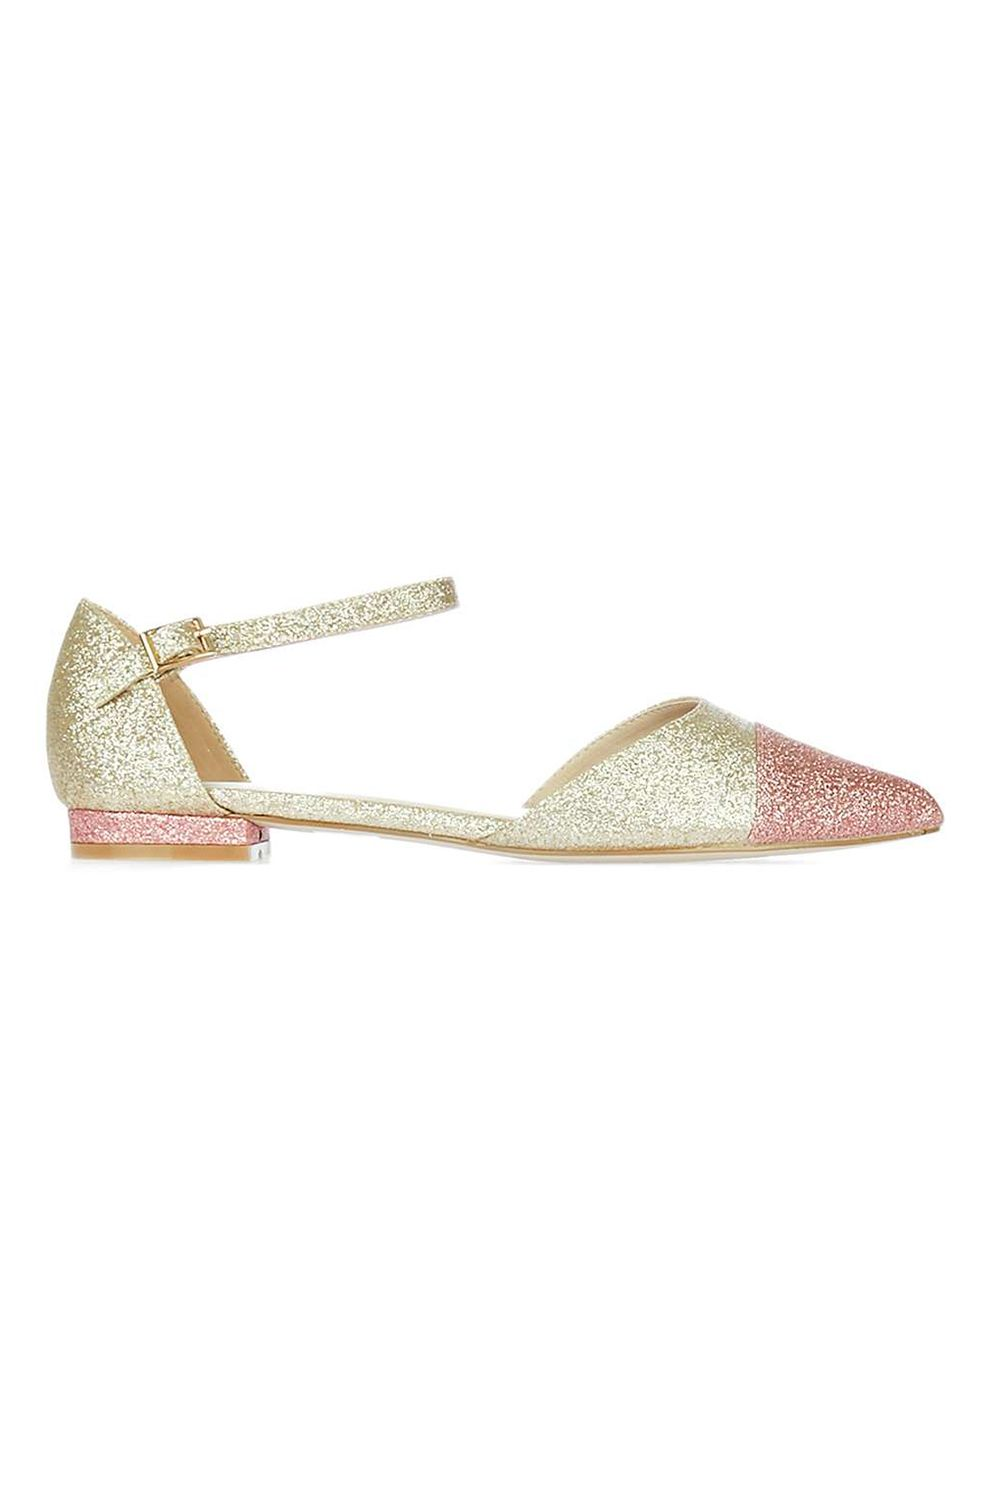 """<p>#ihavethisthingwithcaptoes #evenmoresowithglitter</p><p>$40, <a href=""""http://us.topshop.com/en/tsus/product/shoes-70484/alice-two-part-shoes-5951361?bi=20&amp&#x3B;ps=20"""" target=""""_blank"""" data-tracking-id=""""recirc-text-link"""">topshop.com</a>.</p>"""